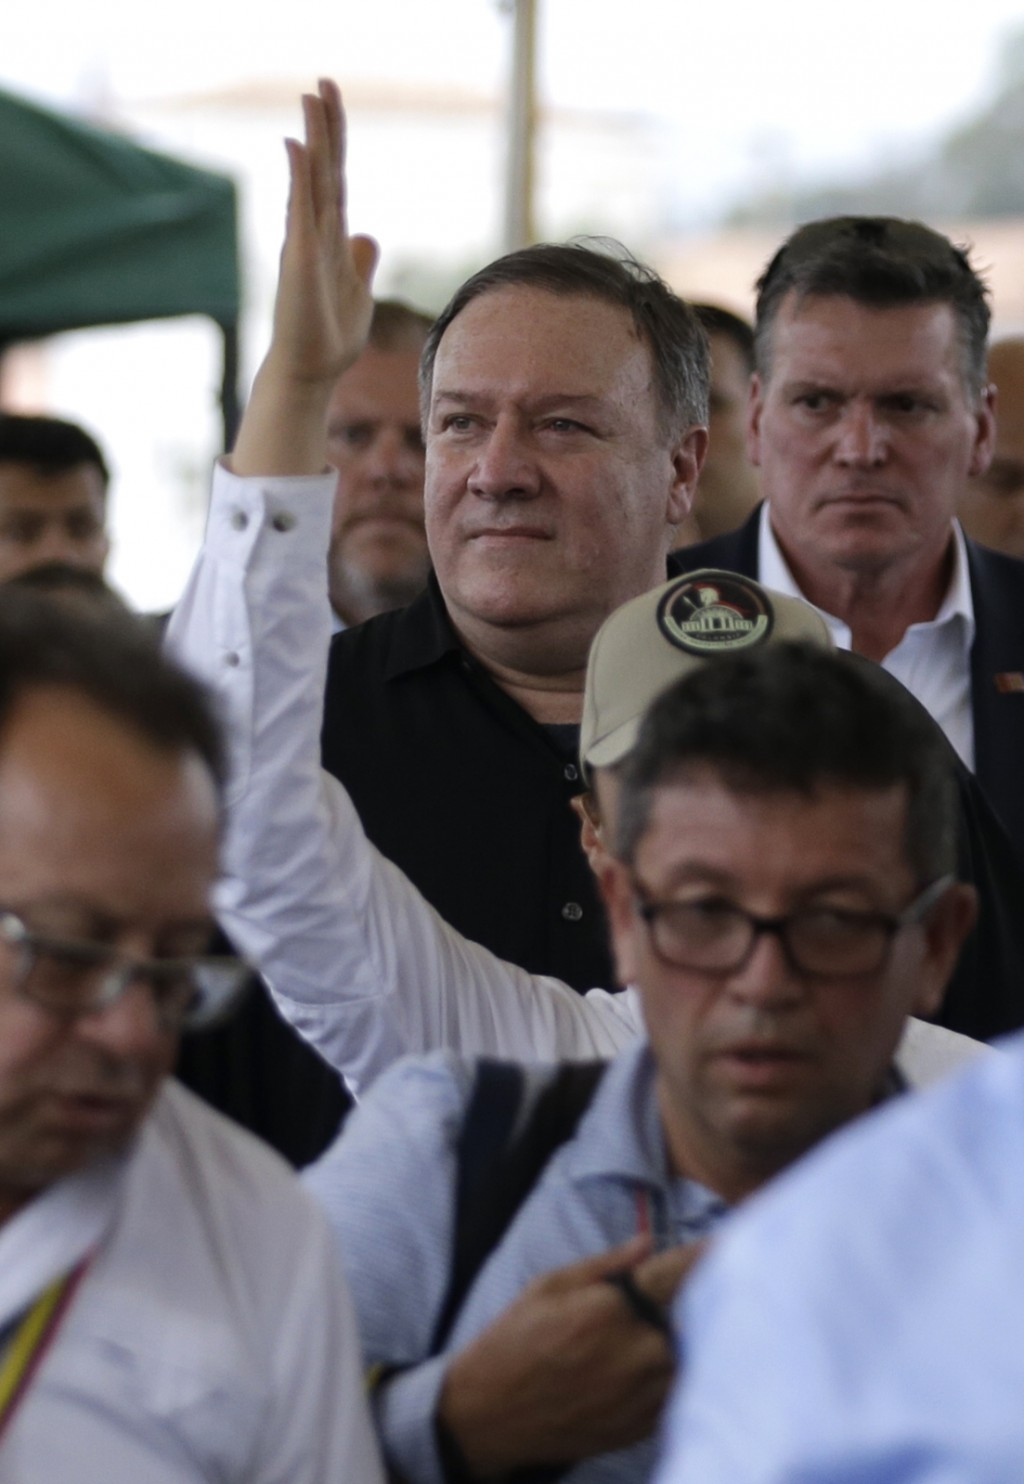 U.S. Secretary of State Mike Pompeo tours La Parada near Cucuta, Colombia, on the border with Venezuela, Sunday, April 14, 2019. Pompeo is on a four-d